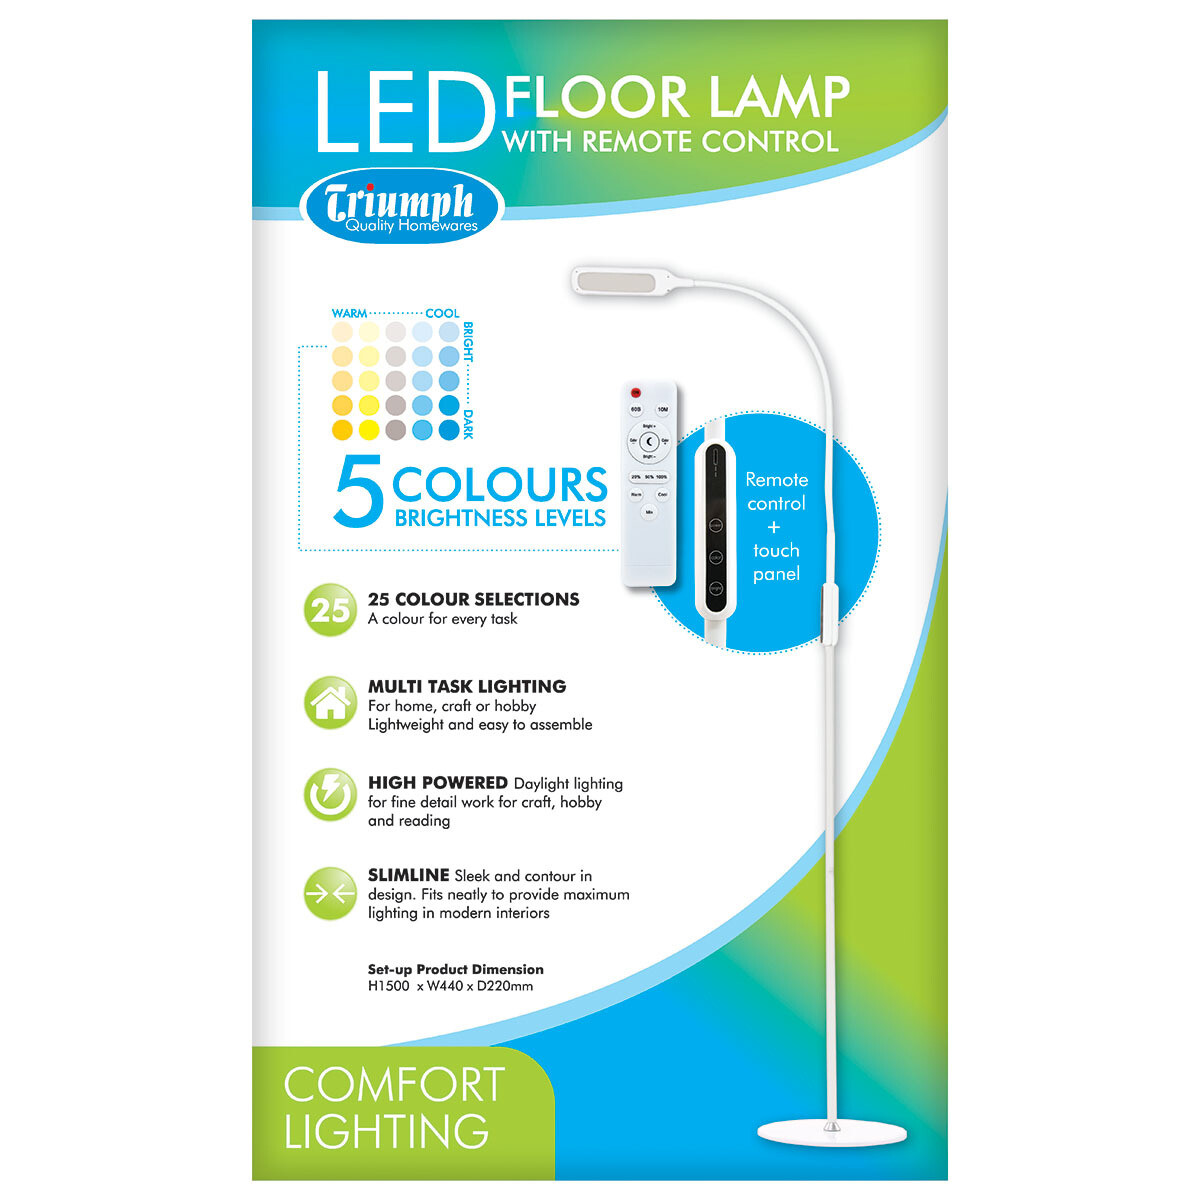 Triumph LED Dimmable Floor Lamp - White (ODU19A)